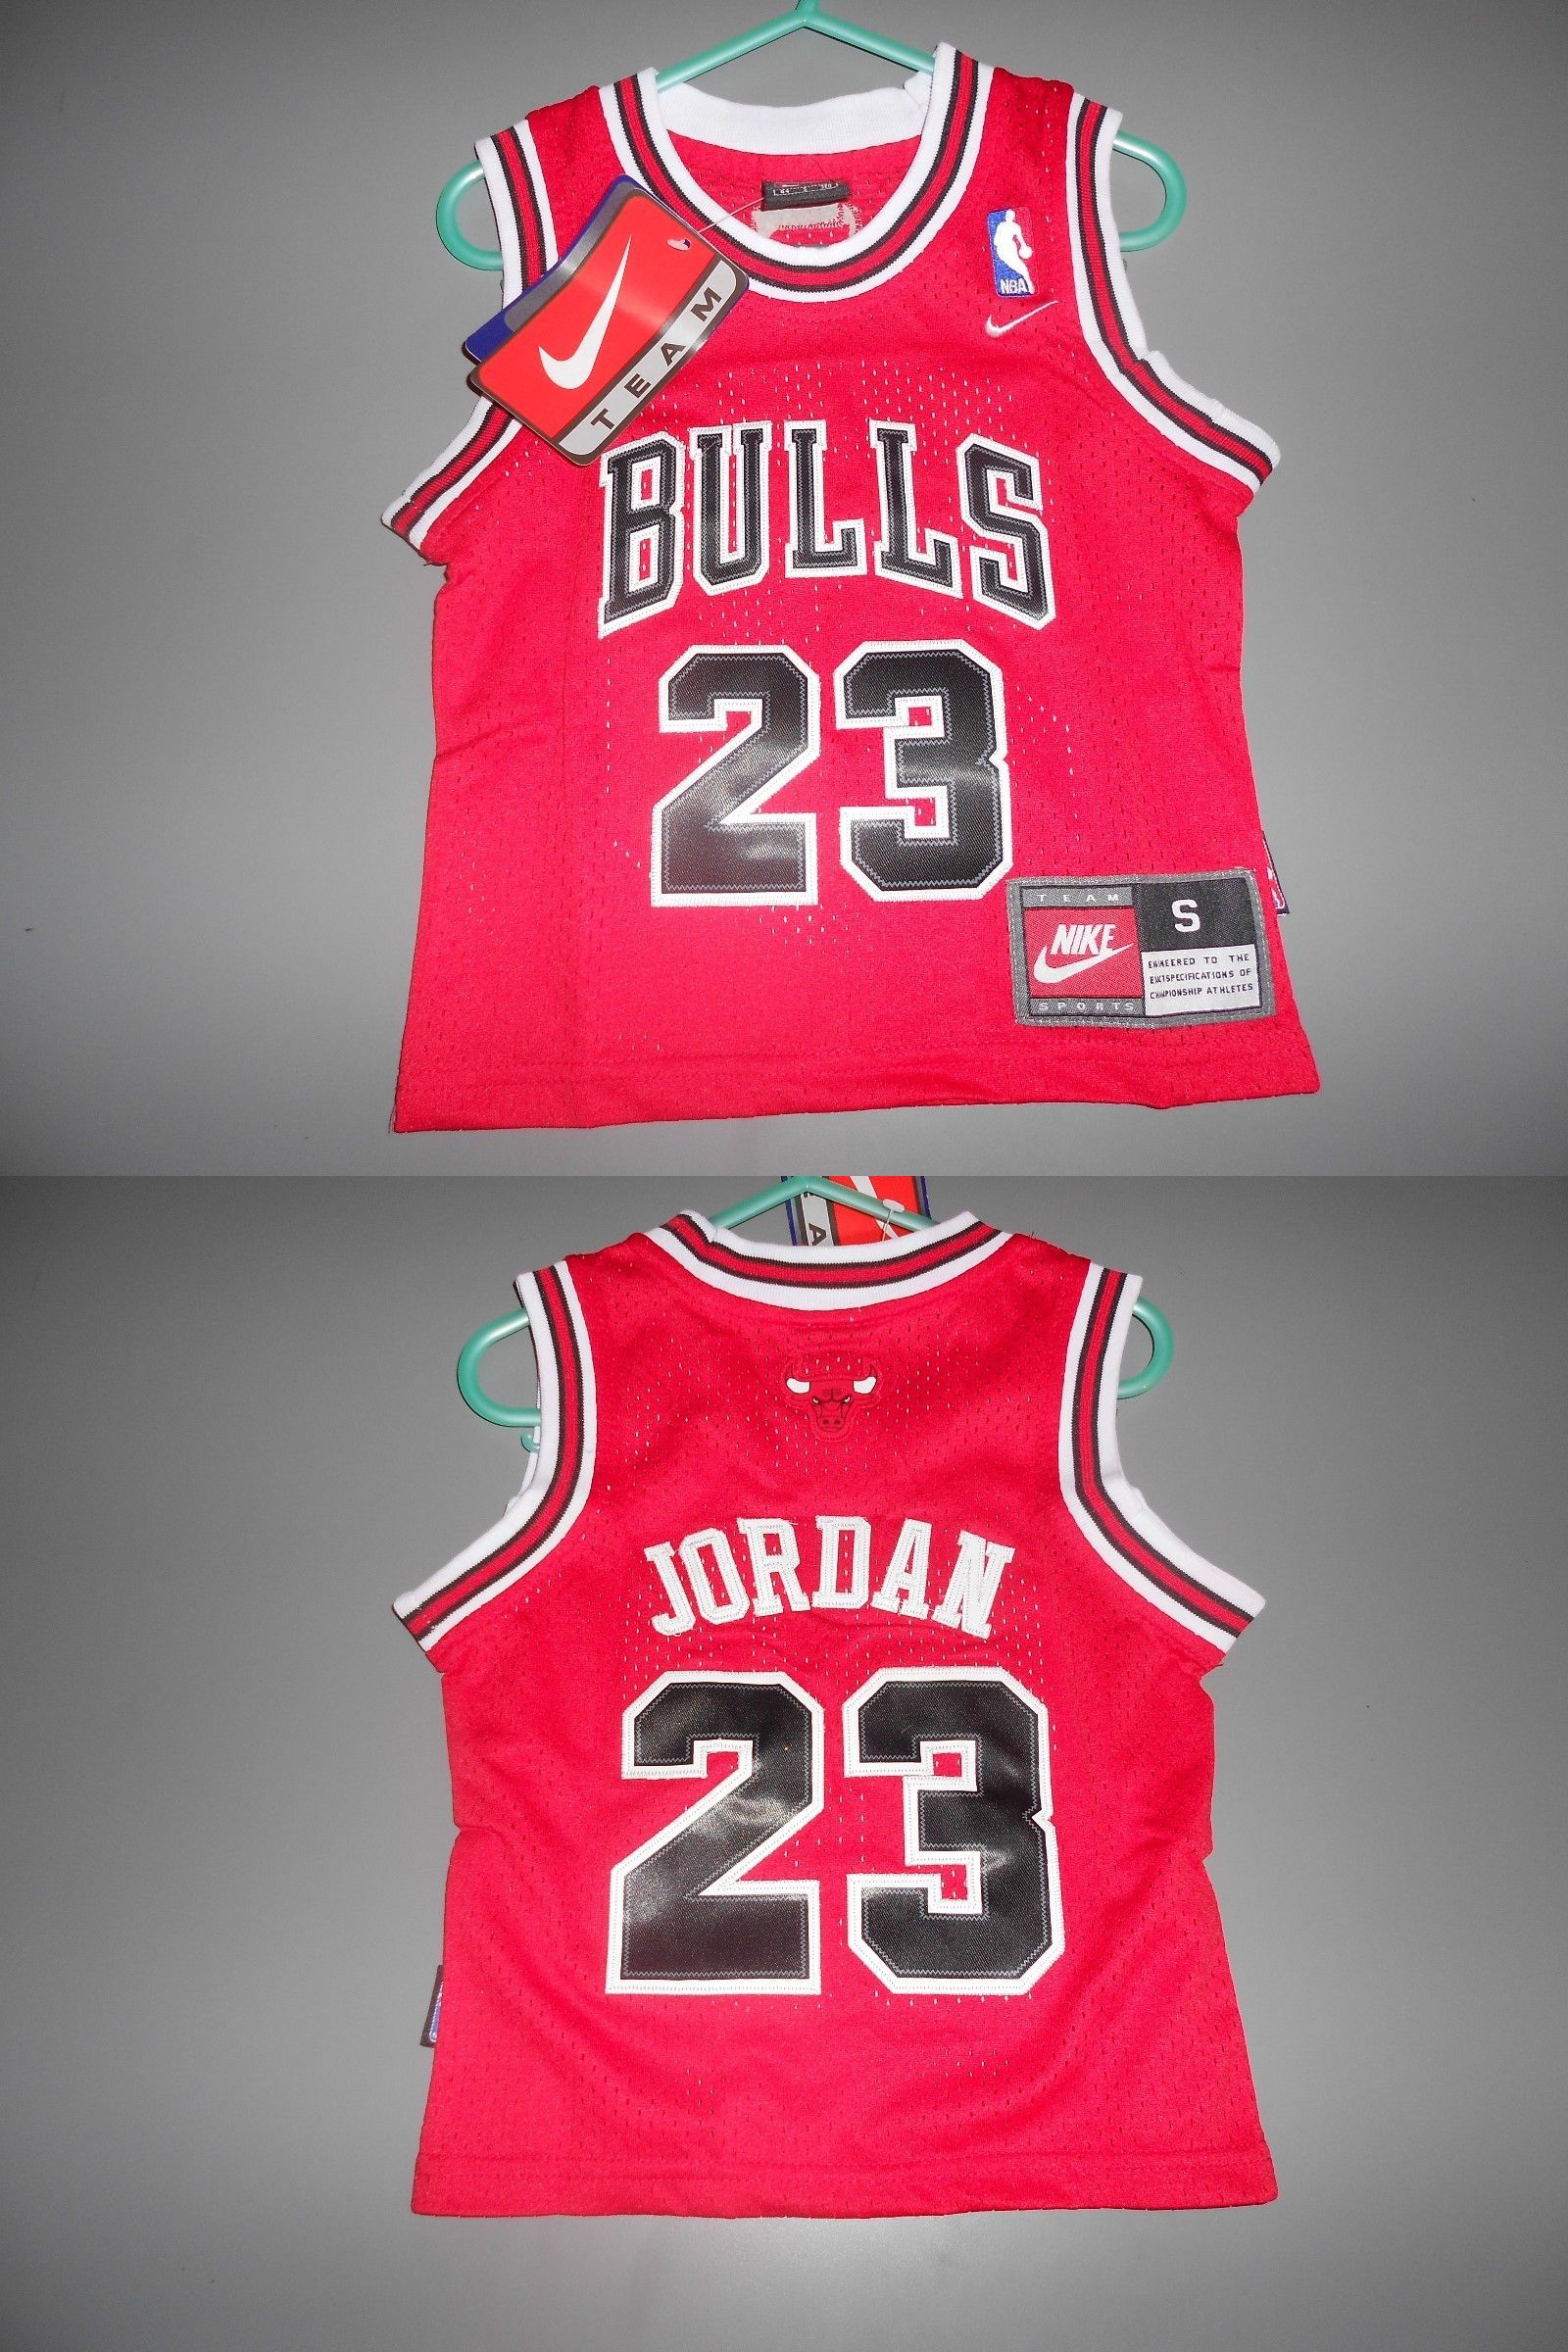 c42f62c9ec3 Tops and T-Shirts 147340: Chicago Bulls Michael Jordan Toddler Jersey Size  2T 4T S. -> BUY IT NOW ONLY: $175 on eBay!